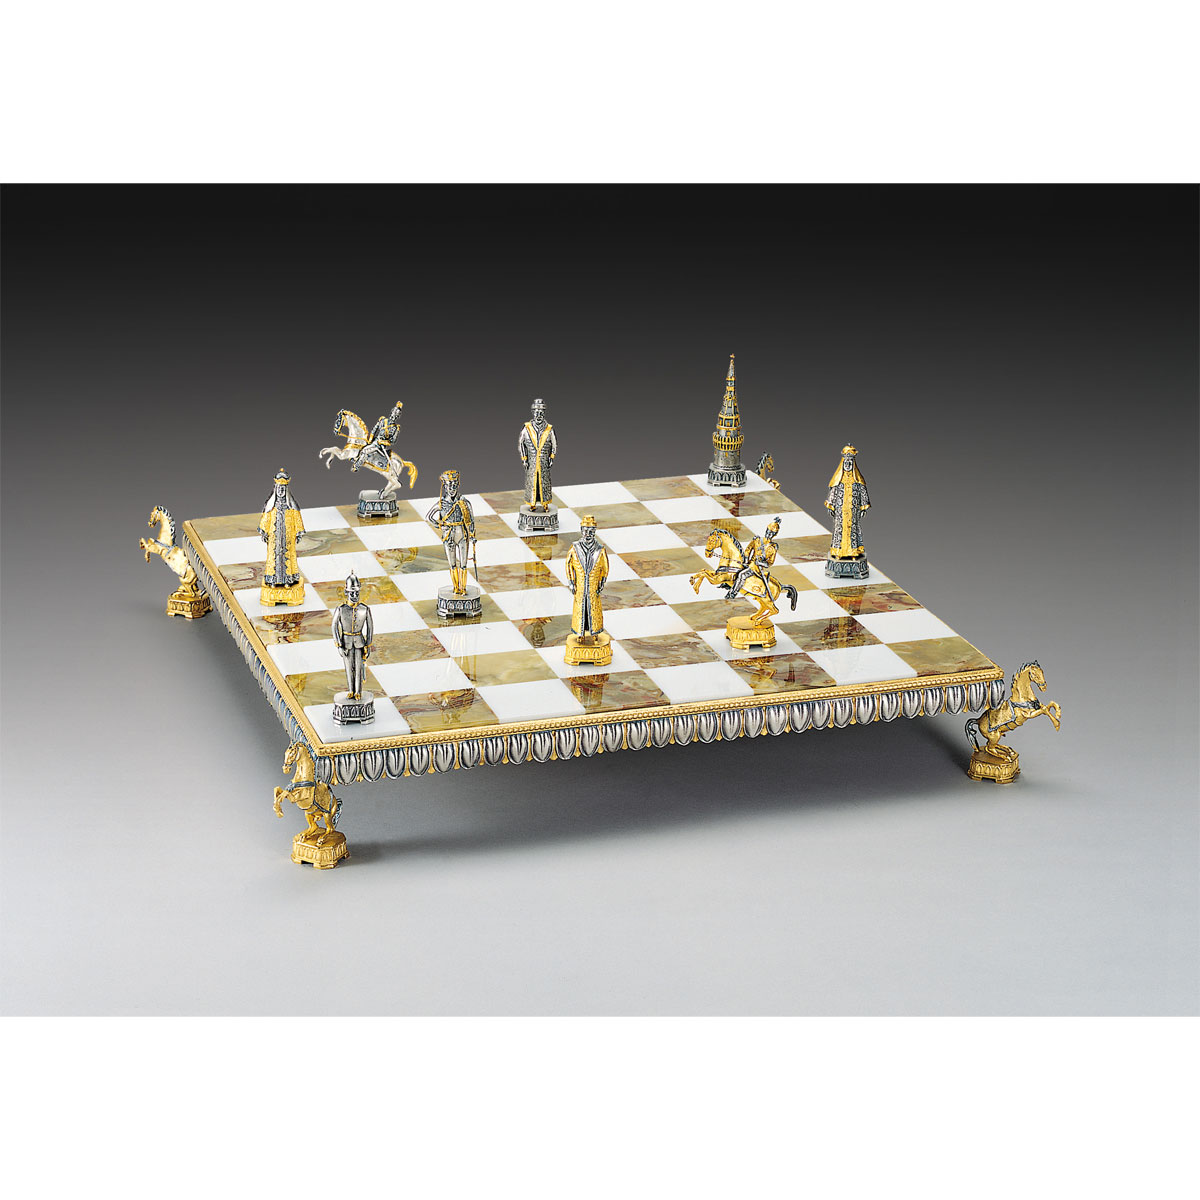 19th Century Kremlin Gold and Silver Themed Chess Board